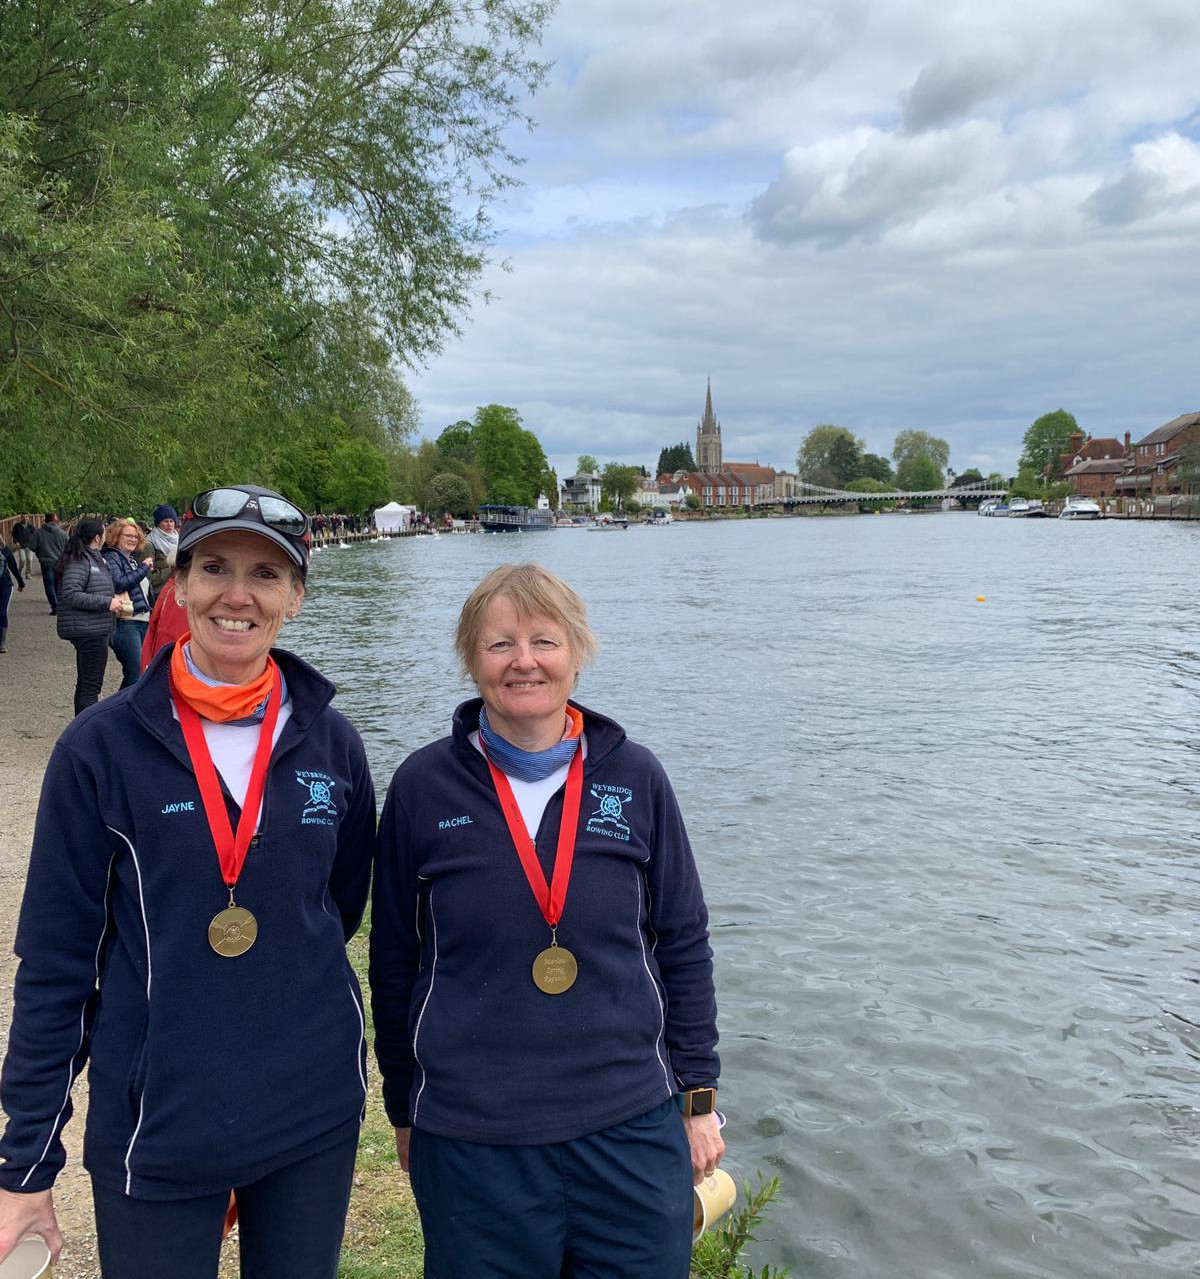 Rachel and Jayne win the W.MasE.2- at Marlow Spring Regatta